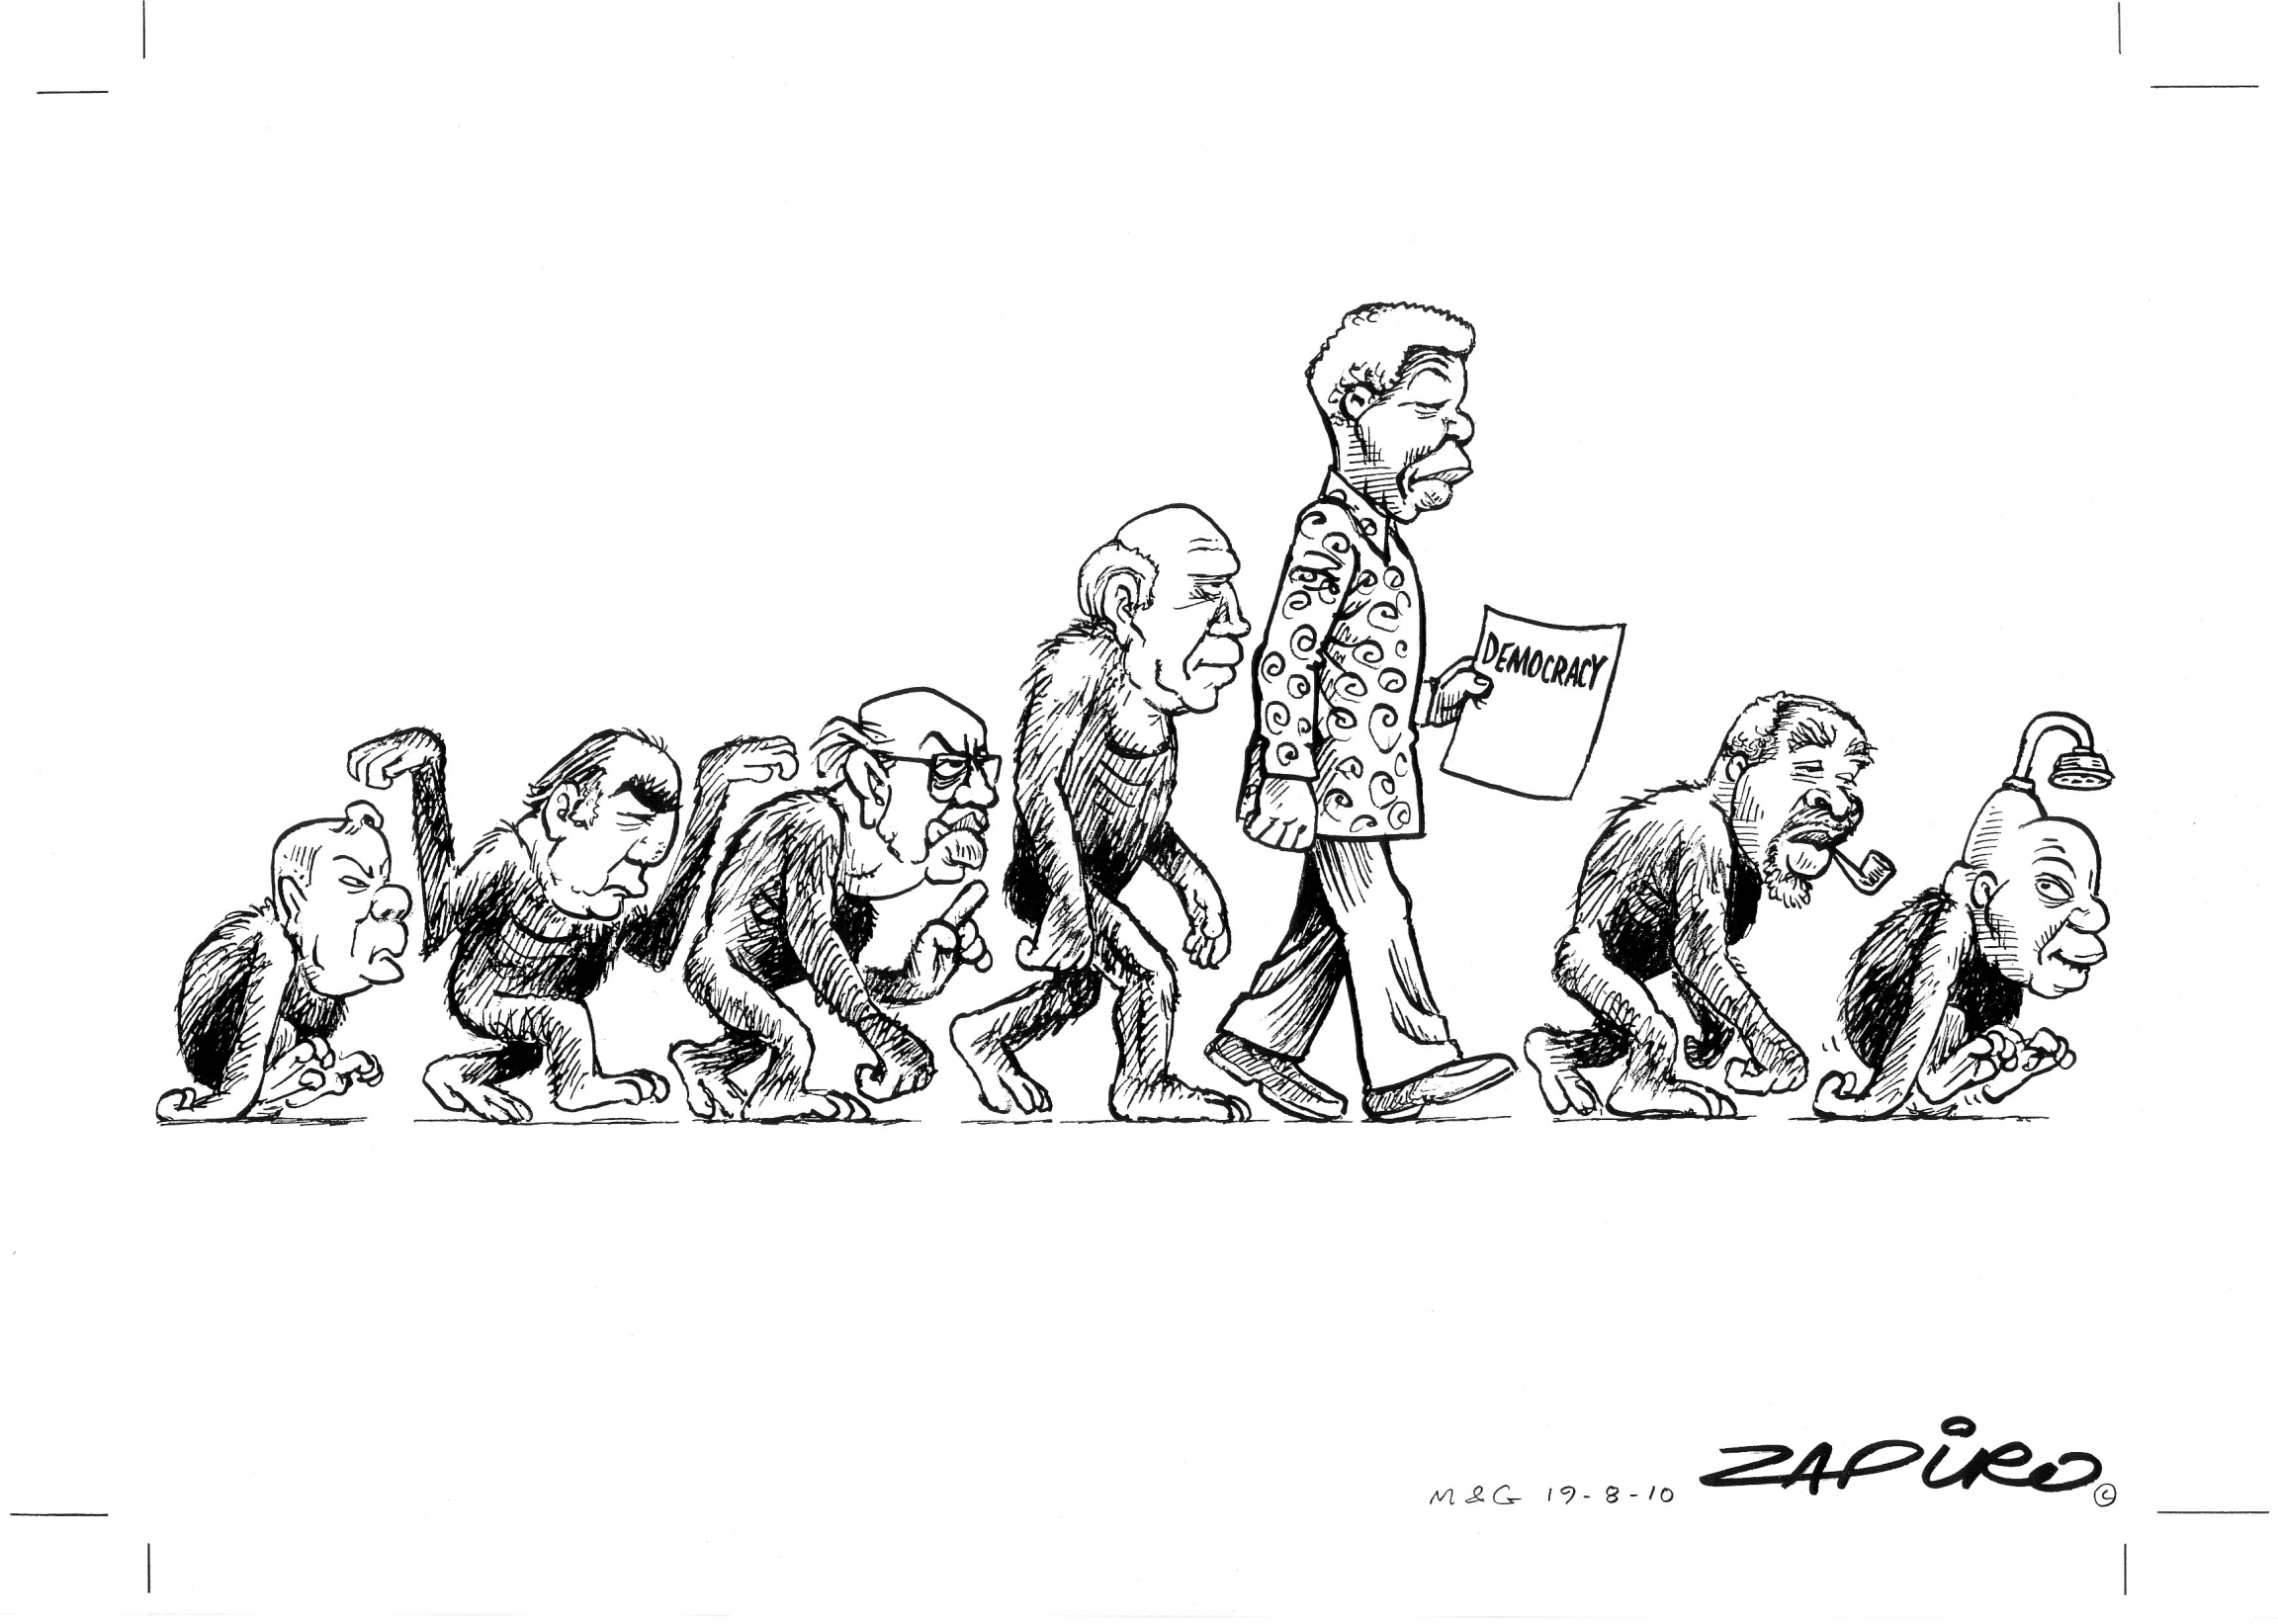 """Evolution of Democracy"" in South Africa."